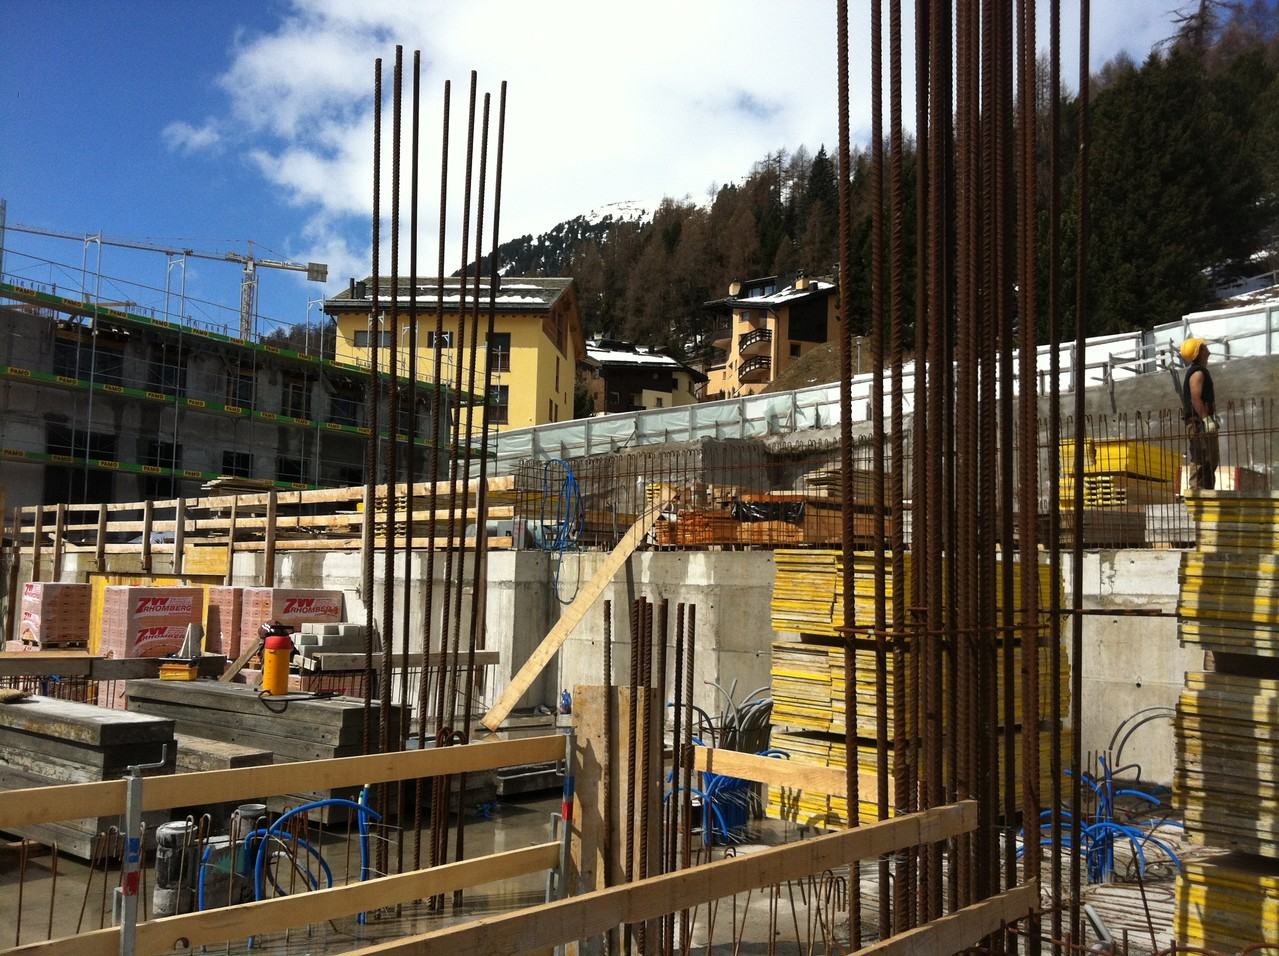 Baustelle April 2013